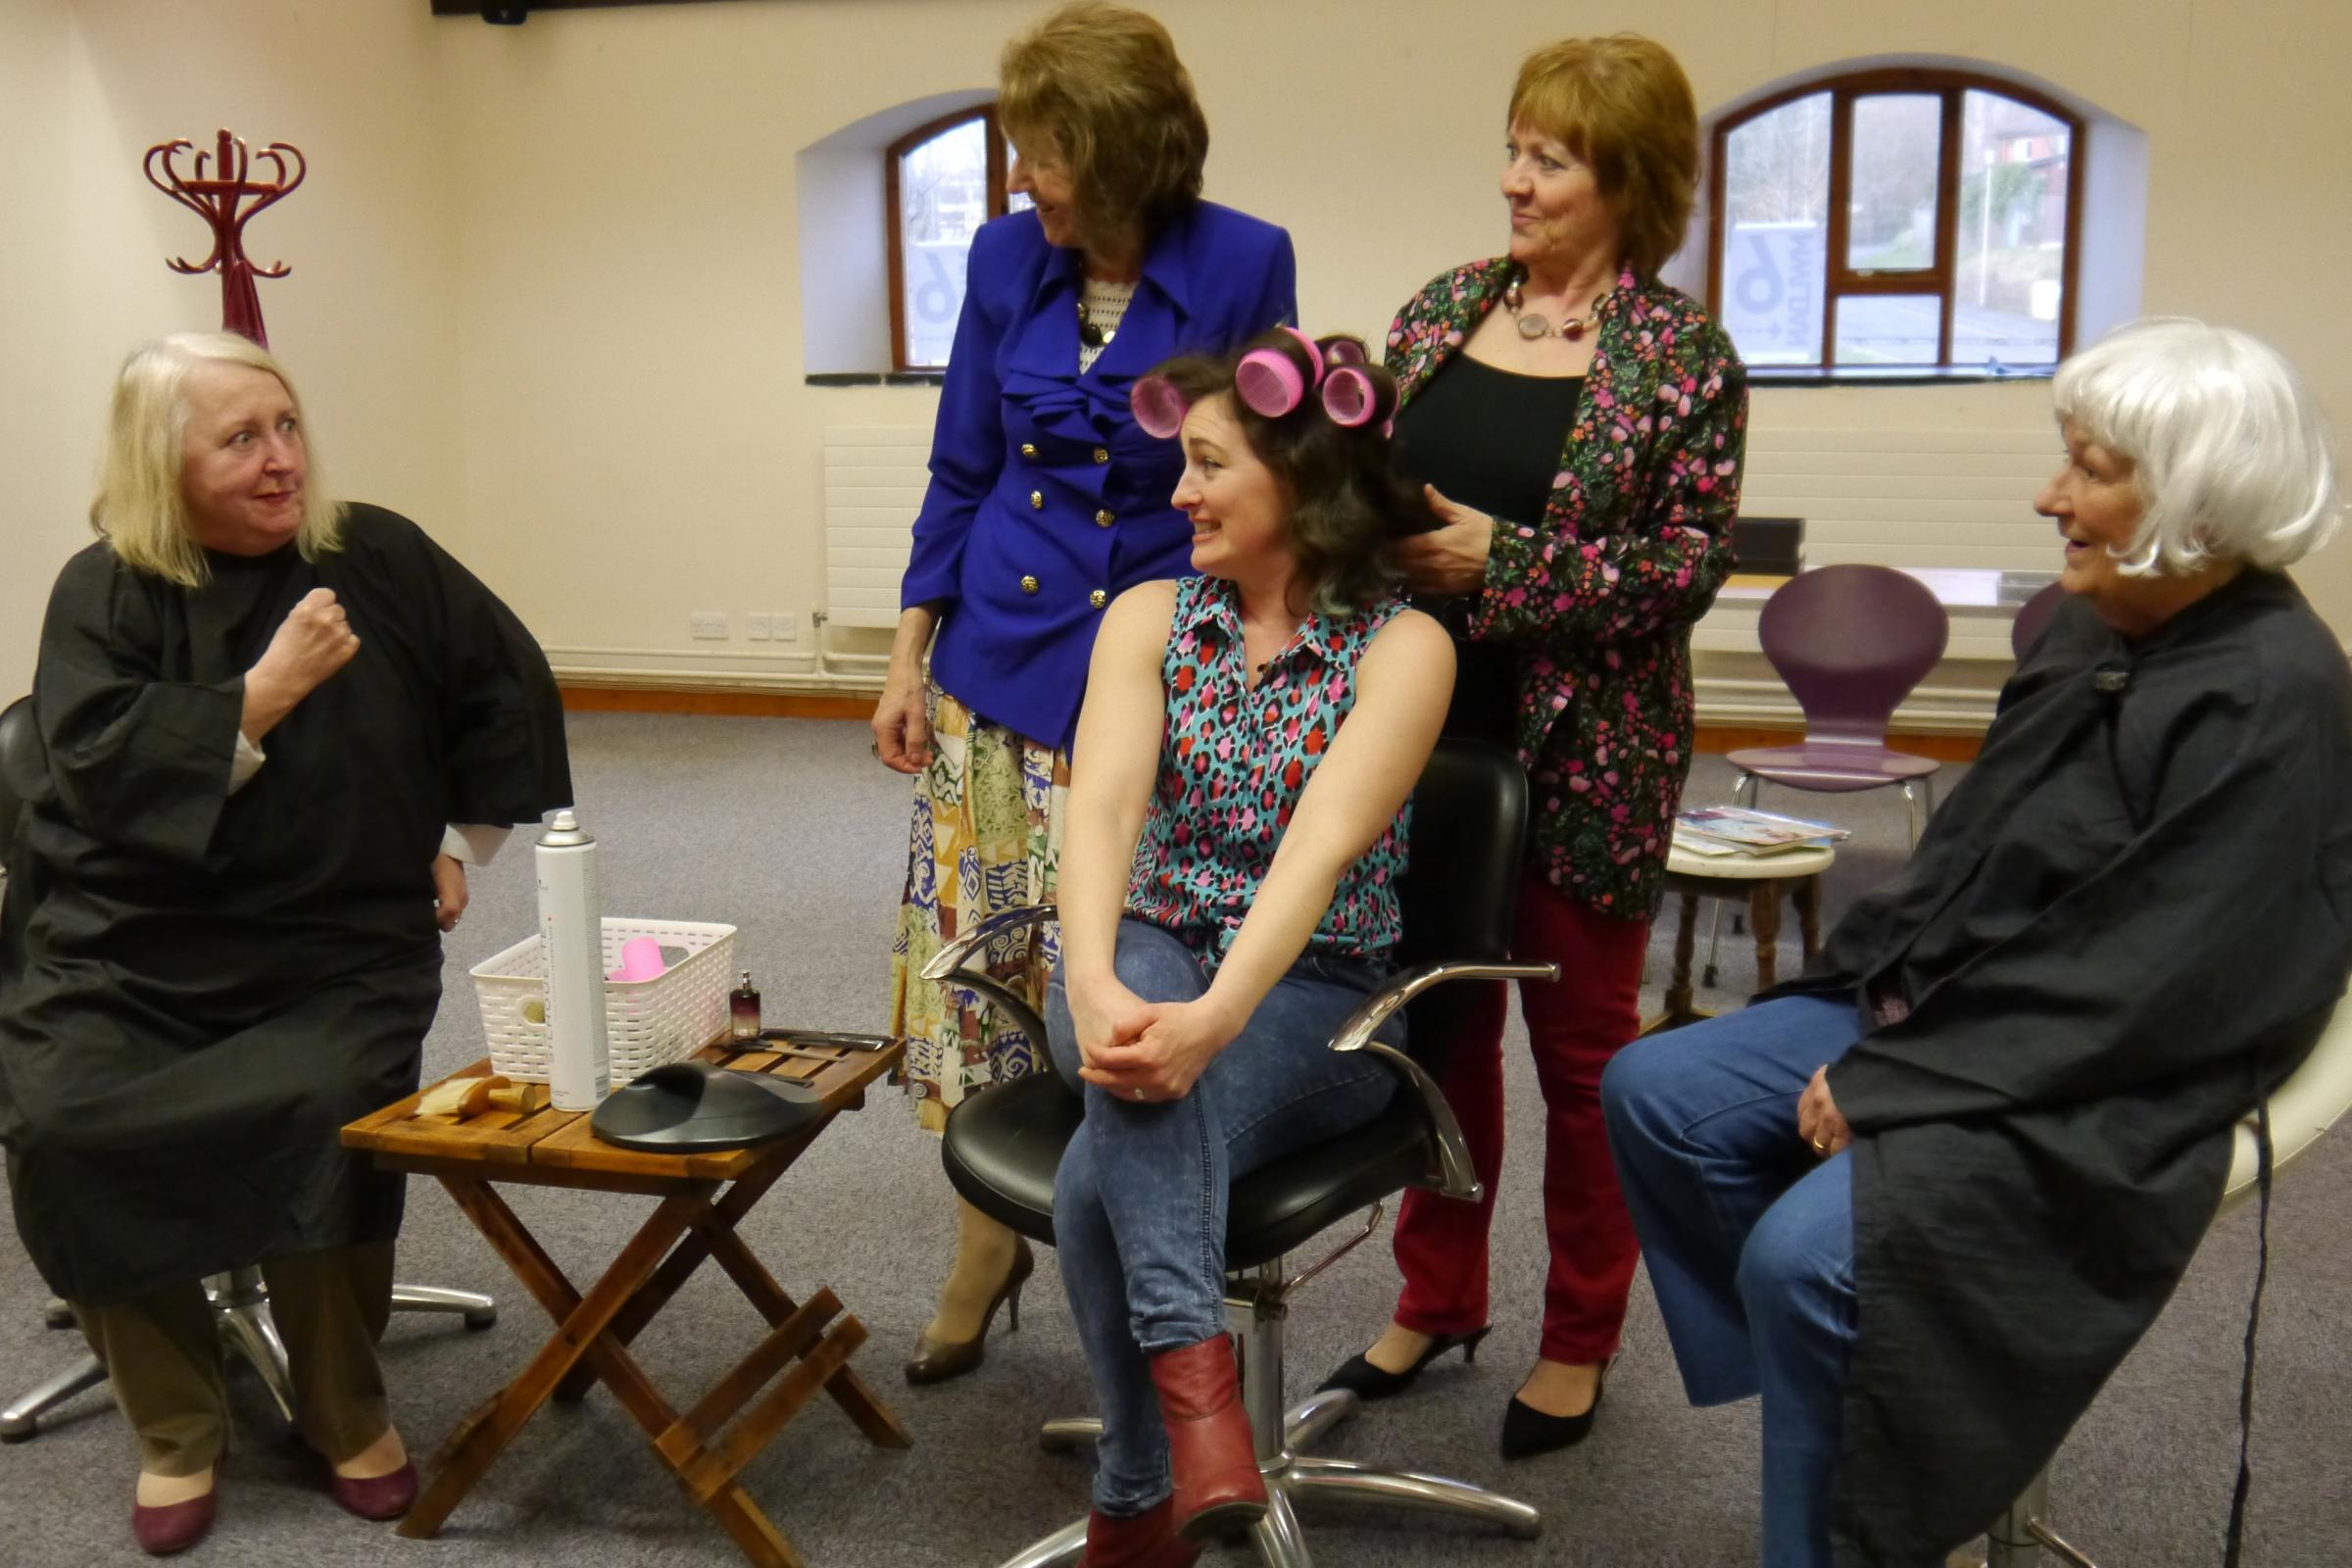 Steel Magnolias is to be staged at Theatr Mwldan by Cardigan Theatre group